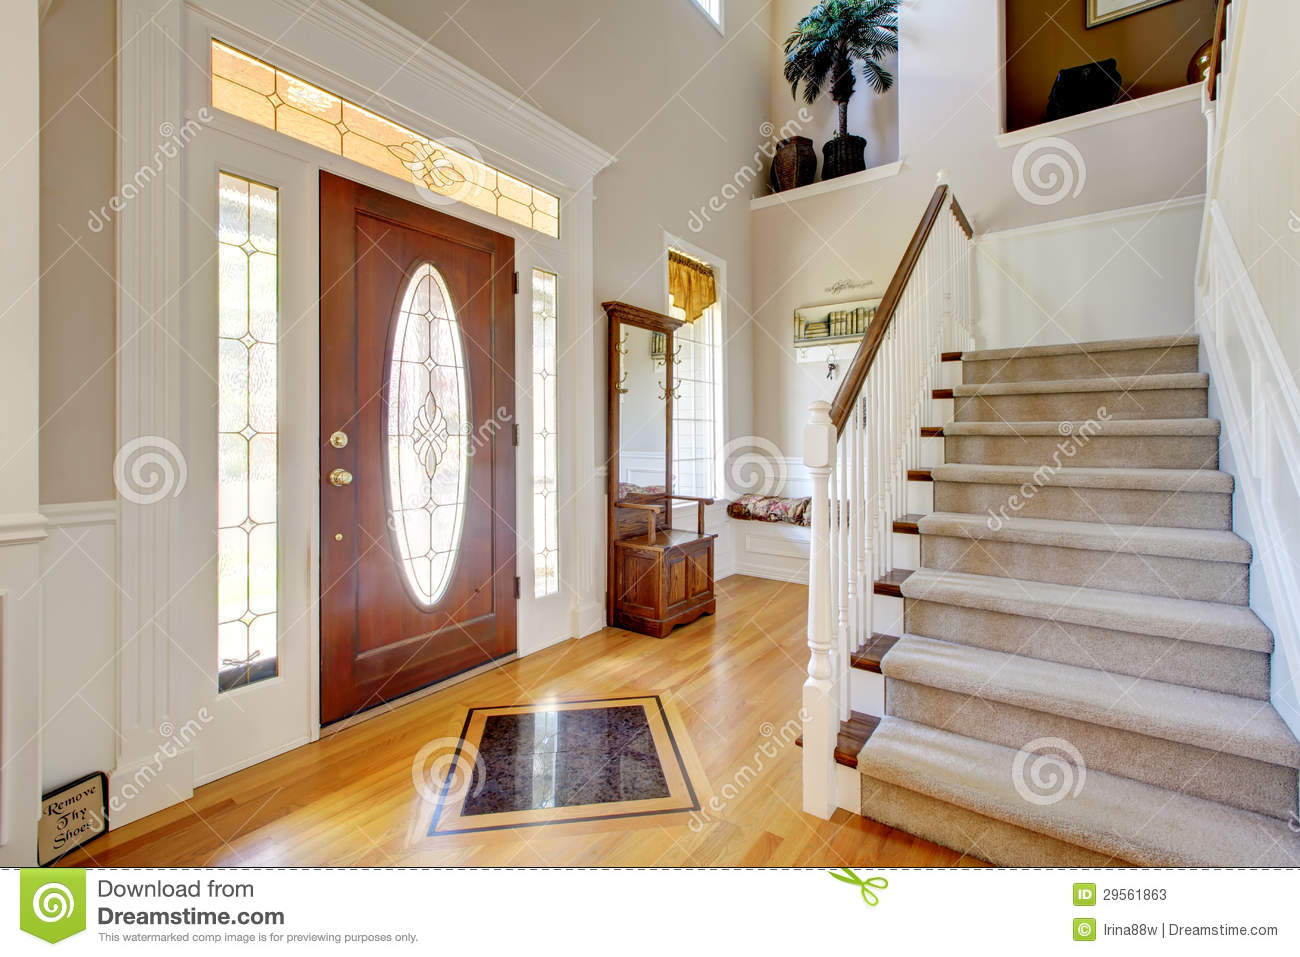 Download Classic AMerican Home Entrance Interior With Staircase Stock Image